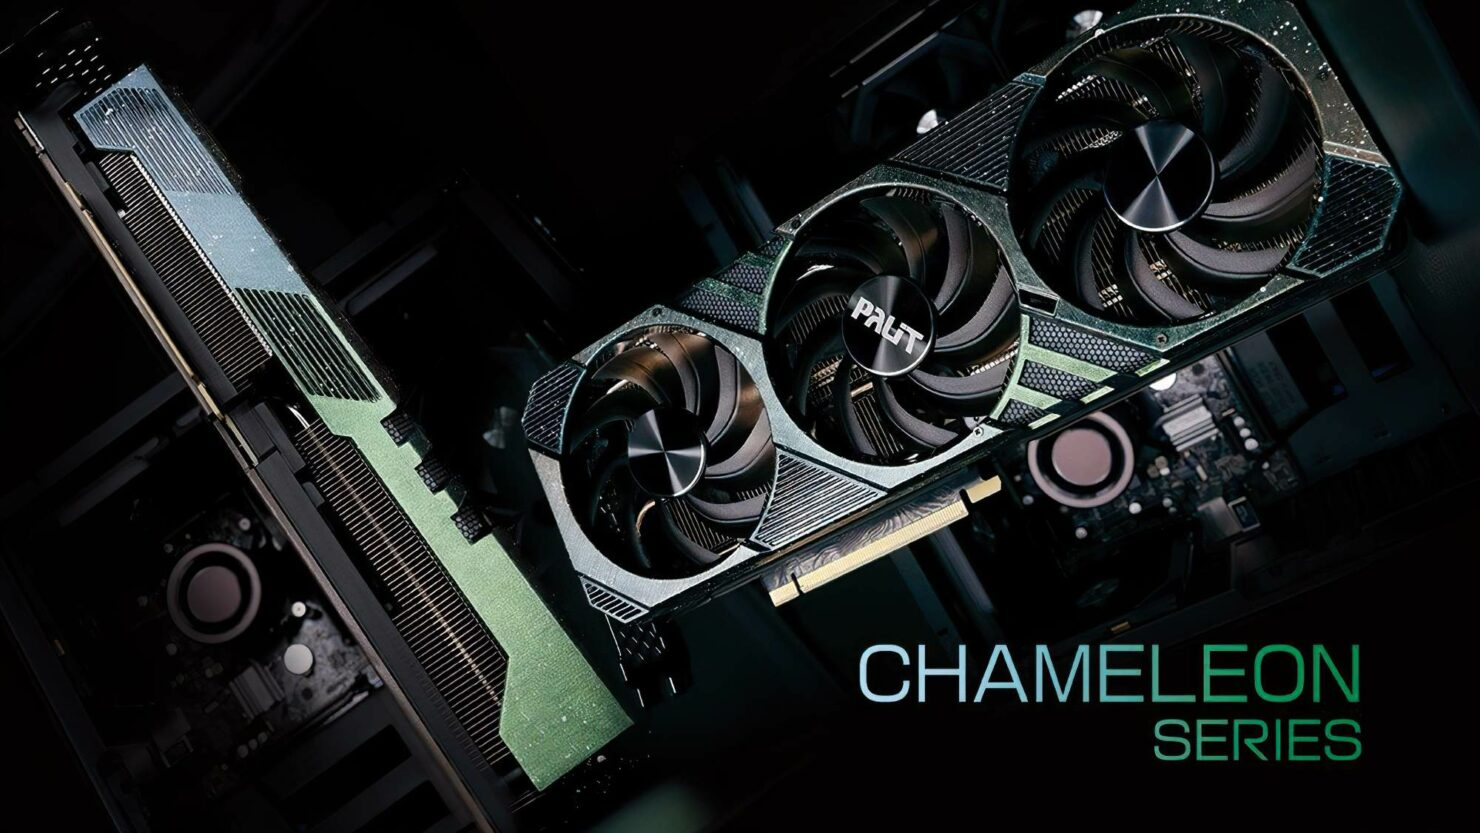 palit-unveils-geforce-rtx-30-chameleon-series-graphics-cards,-custom-modded-with-color-shifting-design